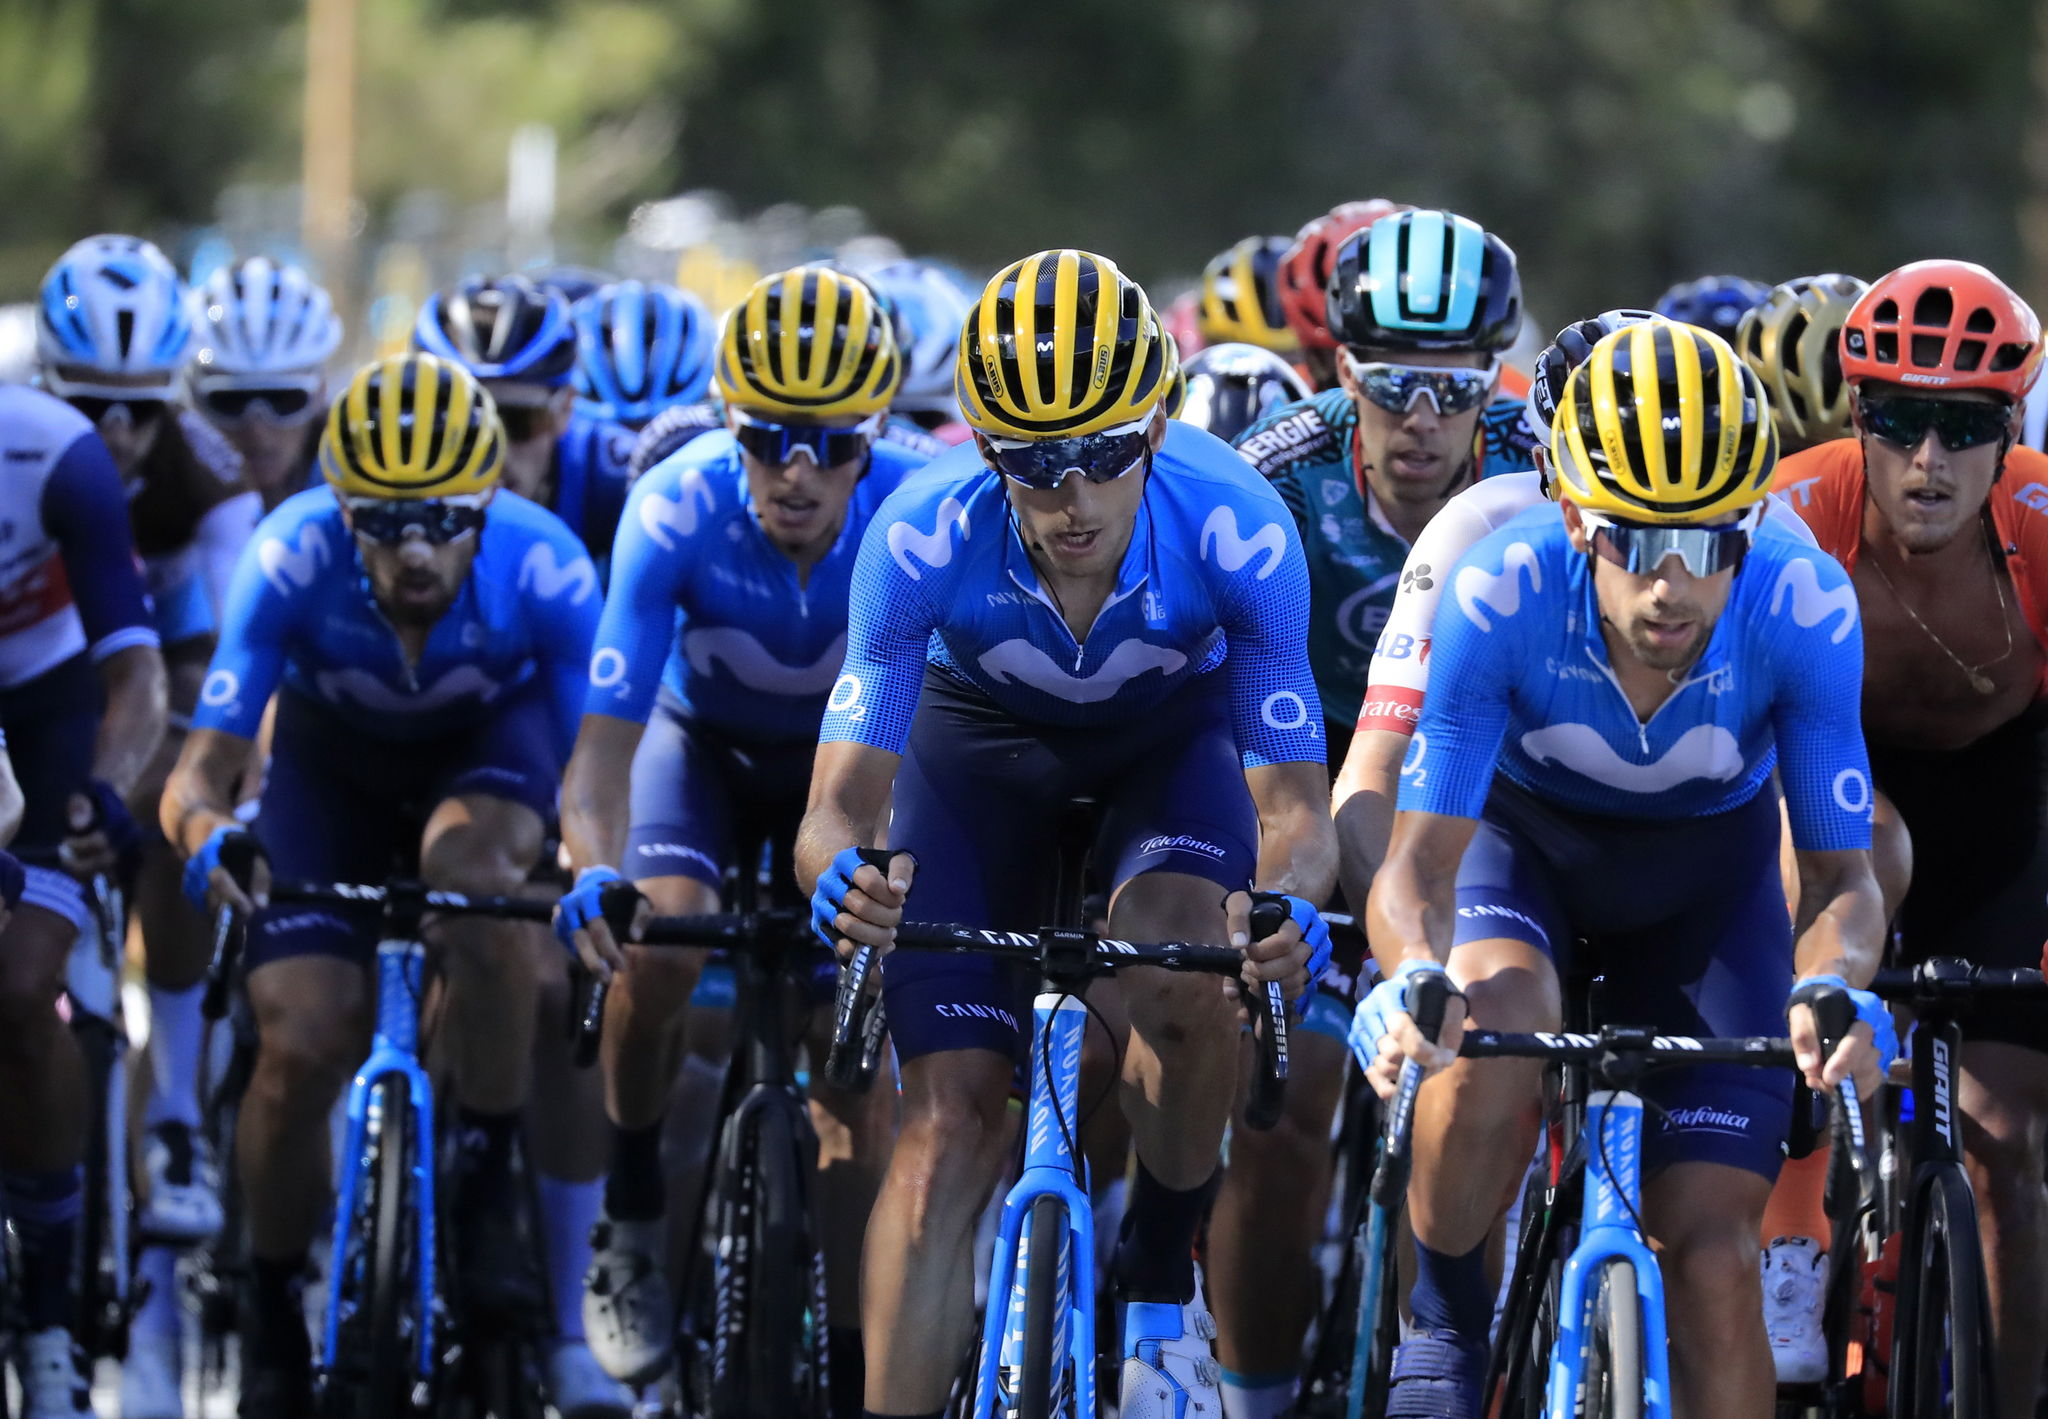 Sarran (France), 10/09/2020.- Riders of Movistar Team in action during the 12th stage of the lt;HIT gt;Tour lt;/HIT gt; de France cycling race over 218km from Chauvigny to Sarran, France, 10 September 2020. (Ciclismo, Francia) EFE/EPA/CHRISTOPHE PETIT TESSON